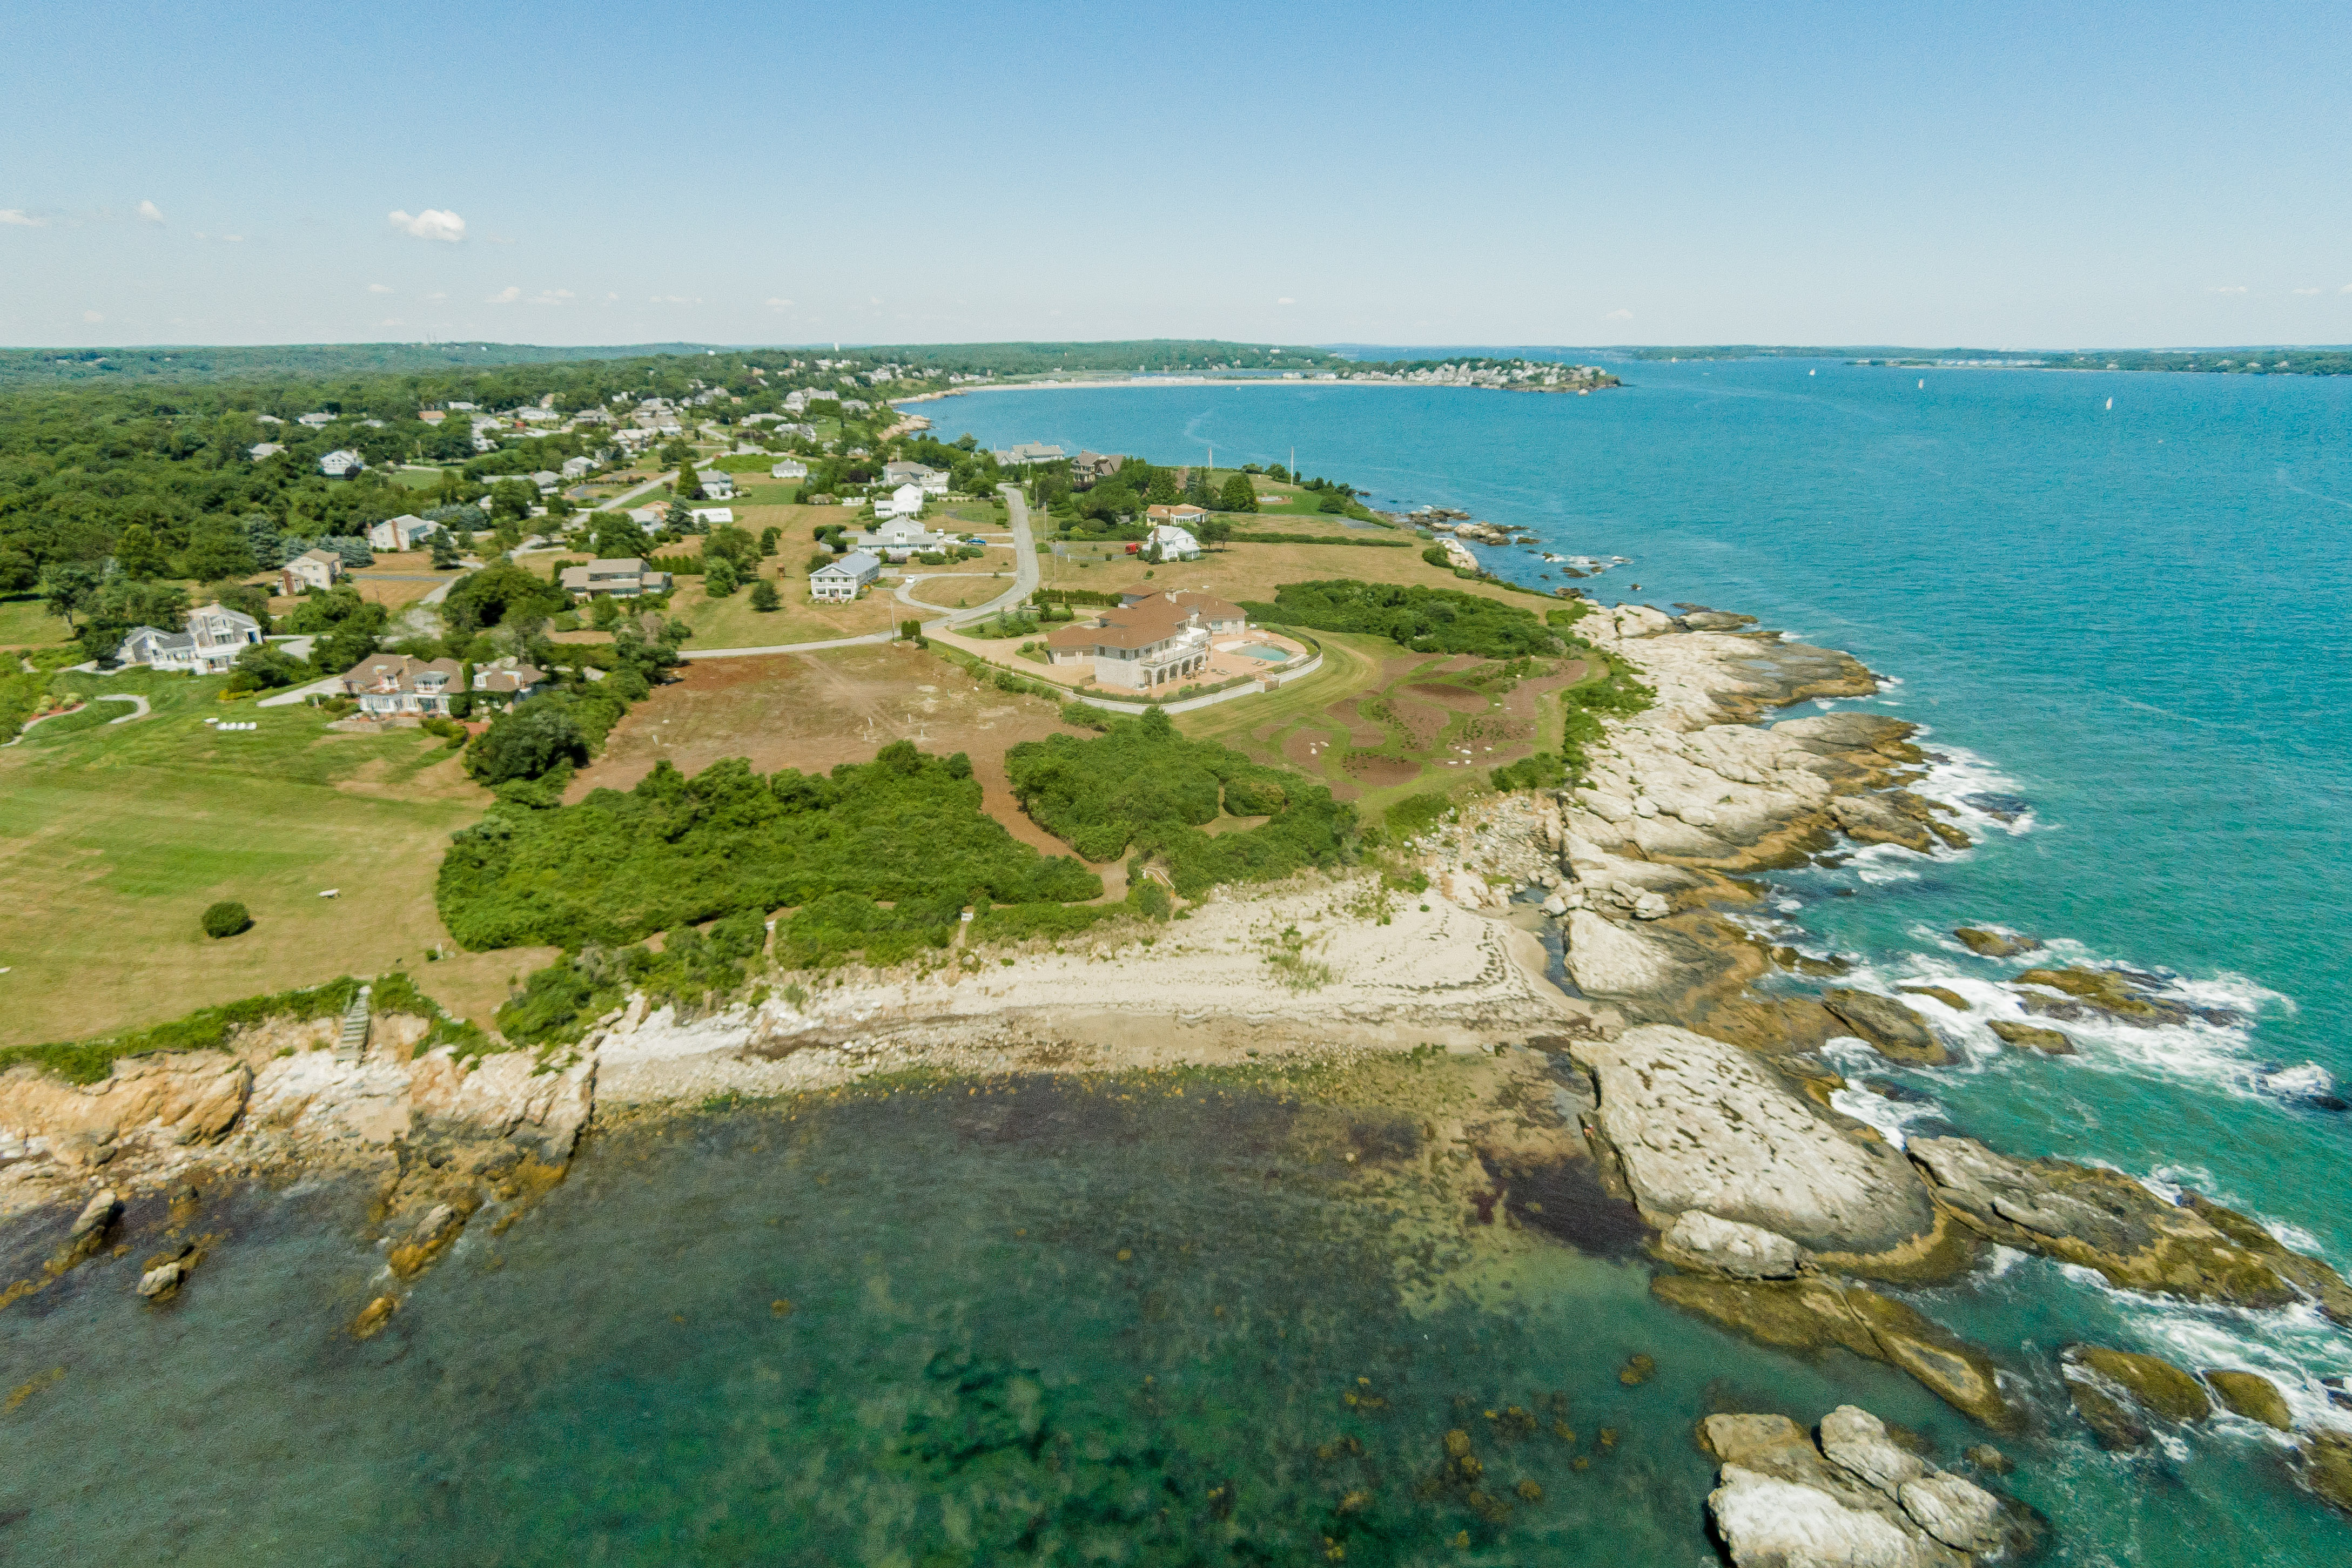 LILA DELMAN SURPASSES HISTORIC RECORDS WITH SALE OF OCEANFRONT LAND IN NARRAGANSETT*